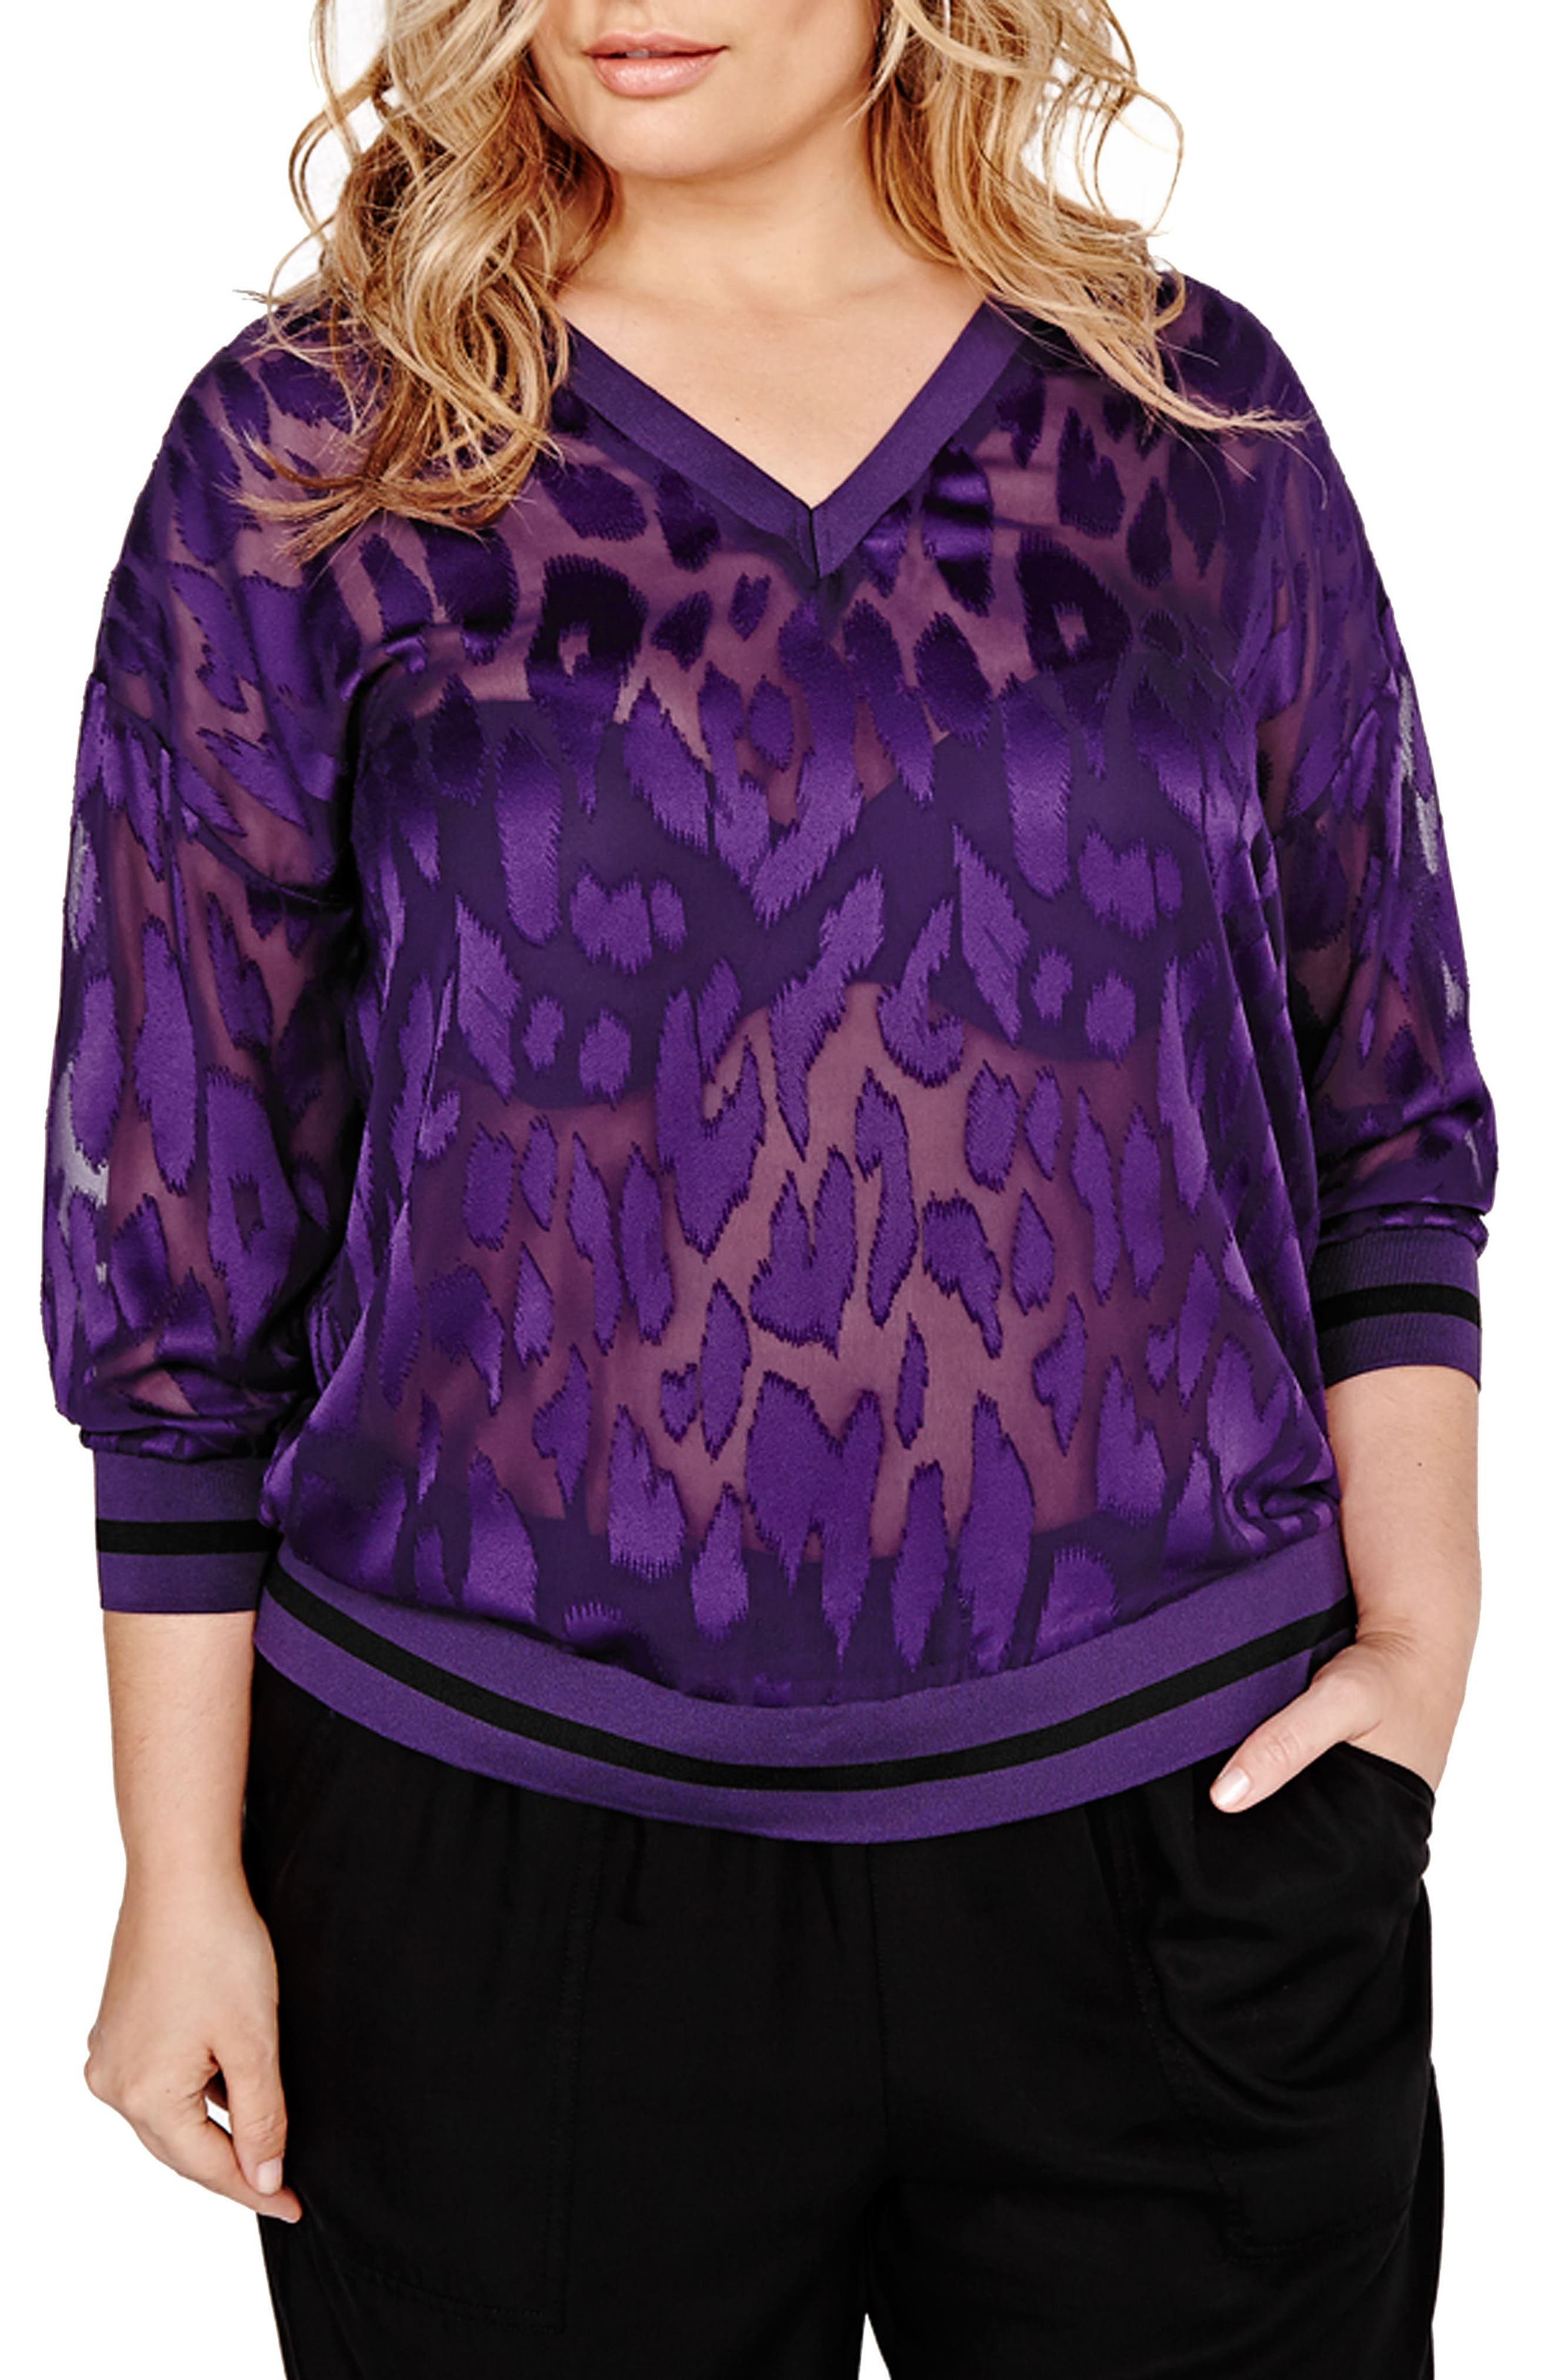 ADDITION ELLE LOVE AND LEGEND Sheer Leopard High/Low Blouse (Plus Size)